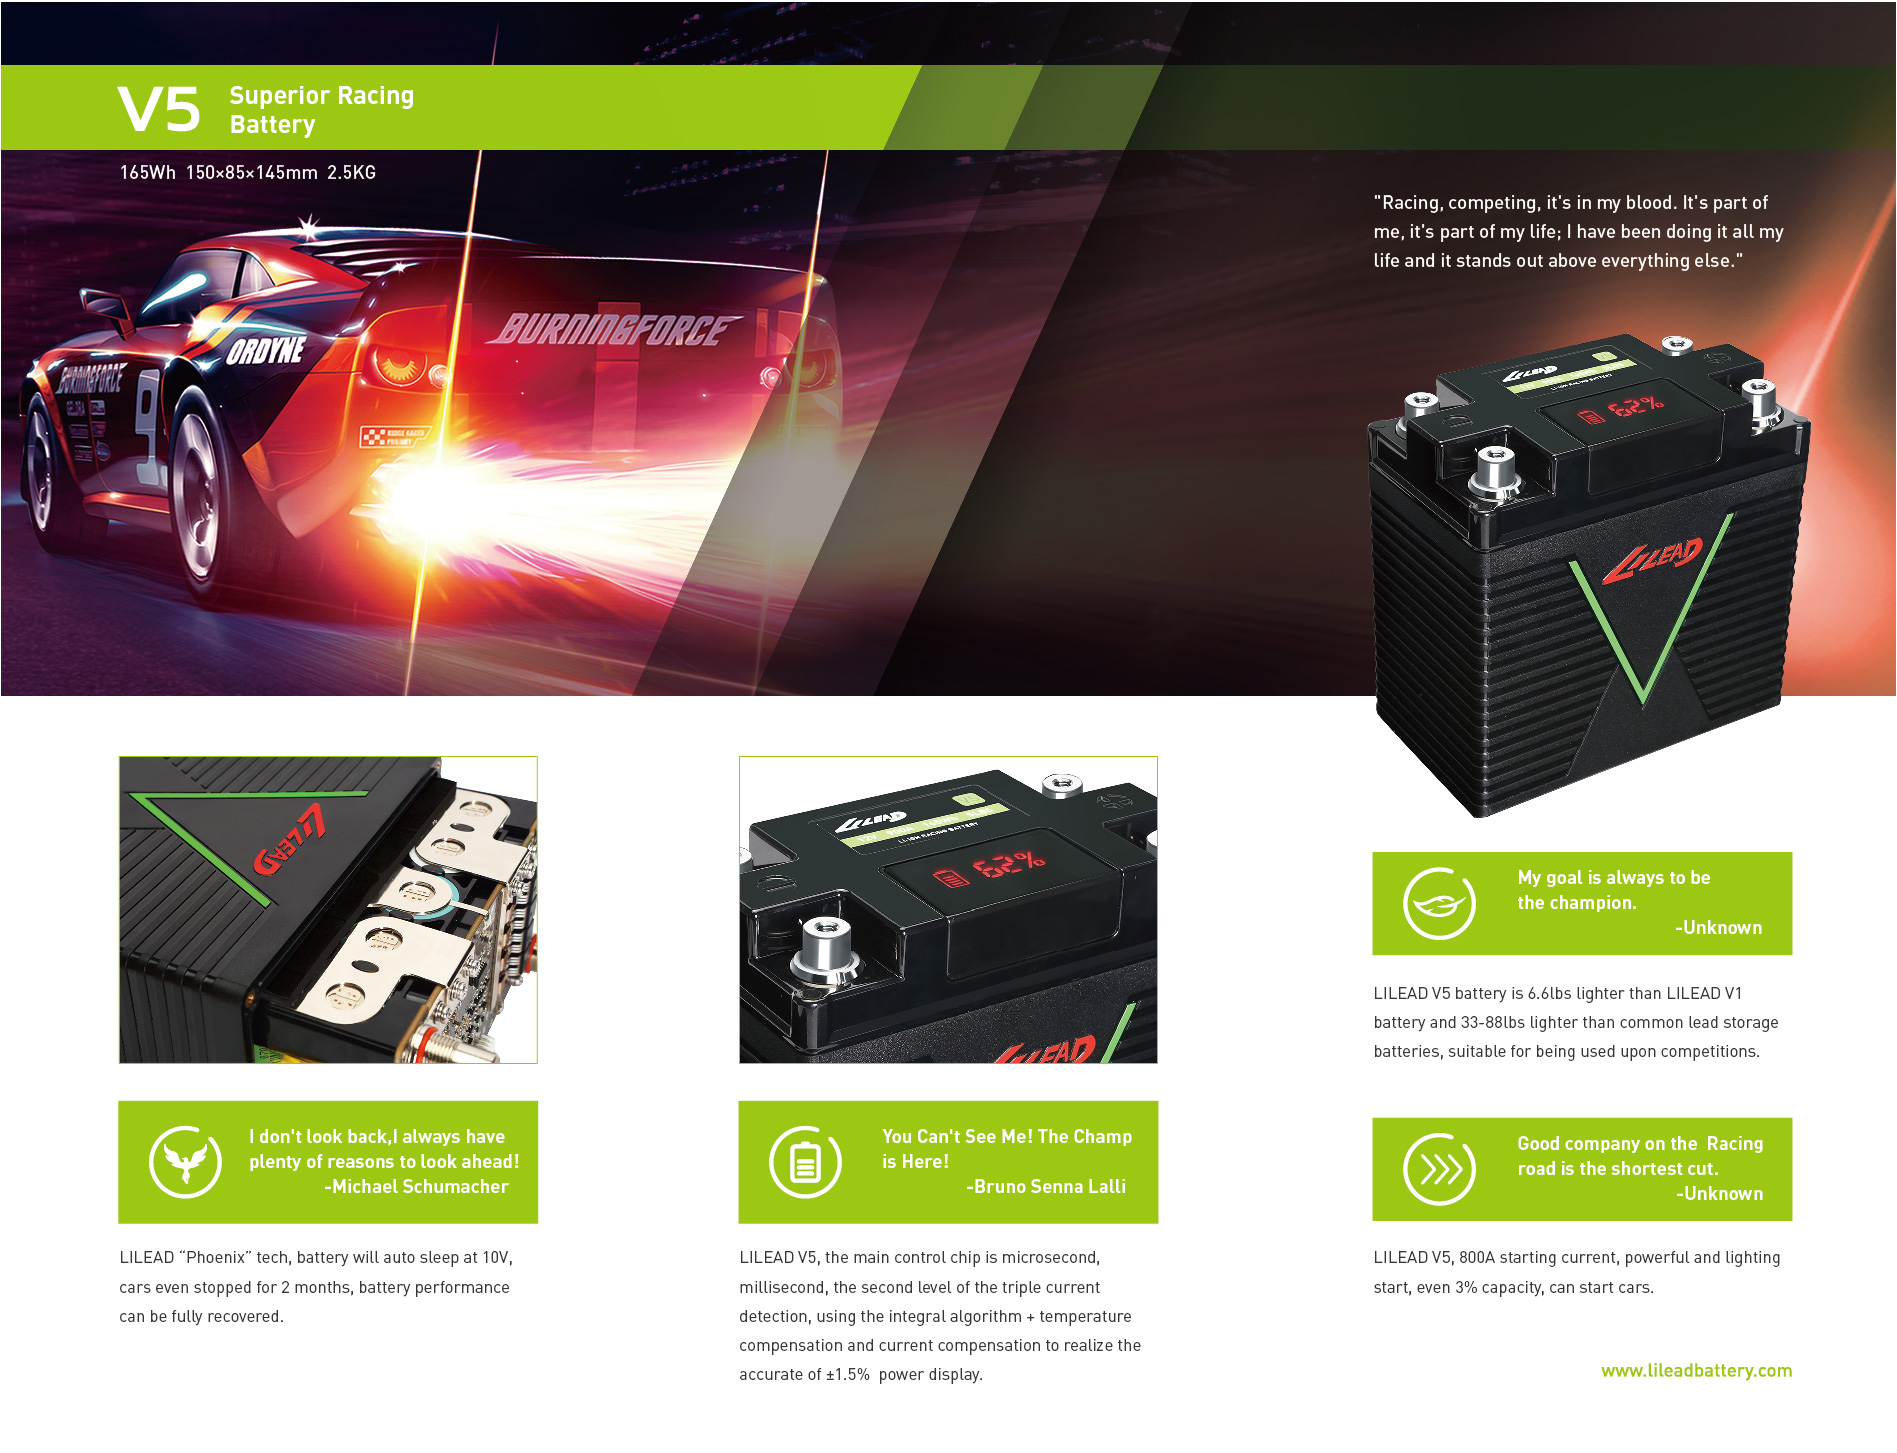 Wholesale Lithium ion Racing Battery, Sales Lithium Racing Battery, Light Weight Lithium Racing Battery Factory OEM